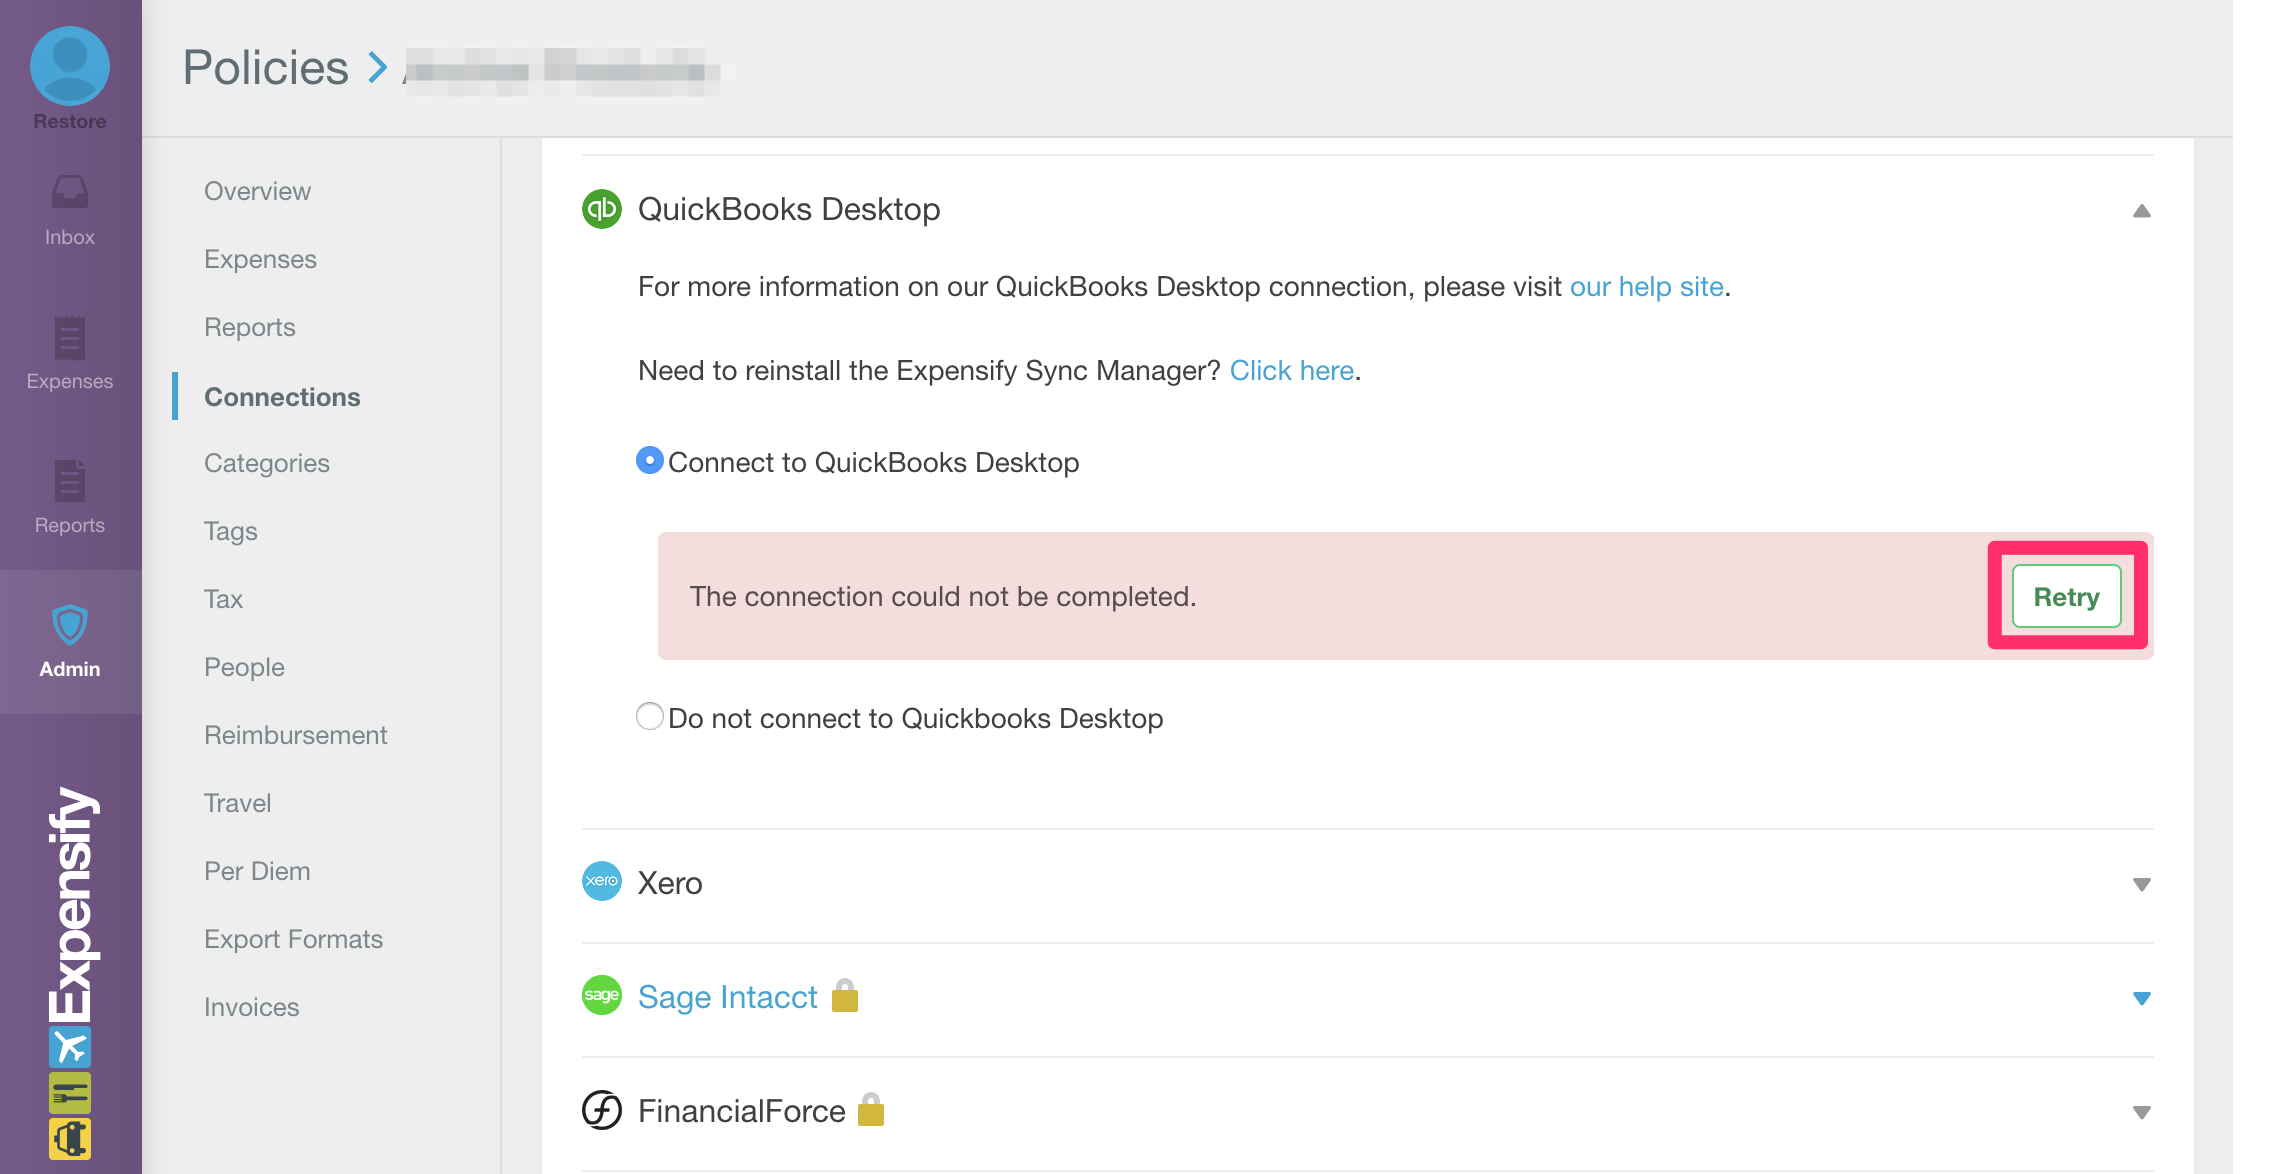 Connecting to Quickbooks Desktop - where can I find my token